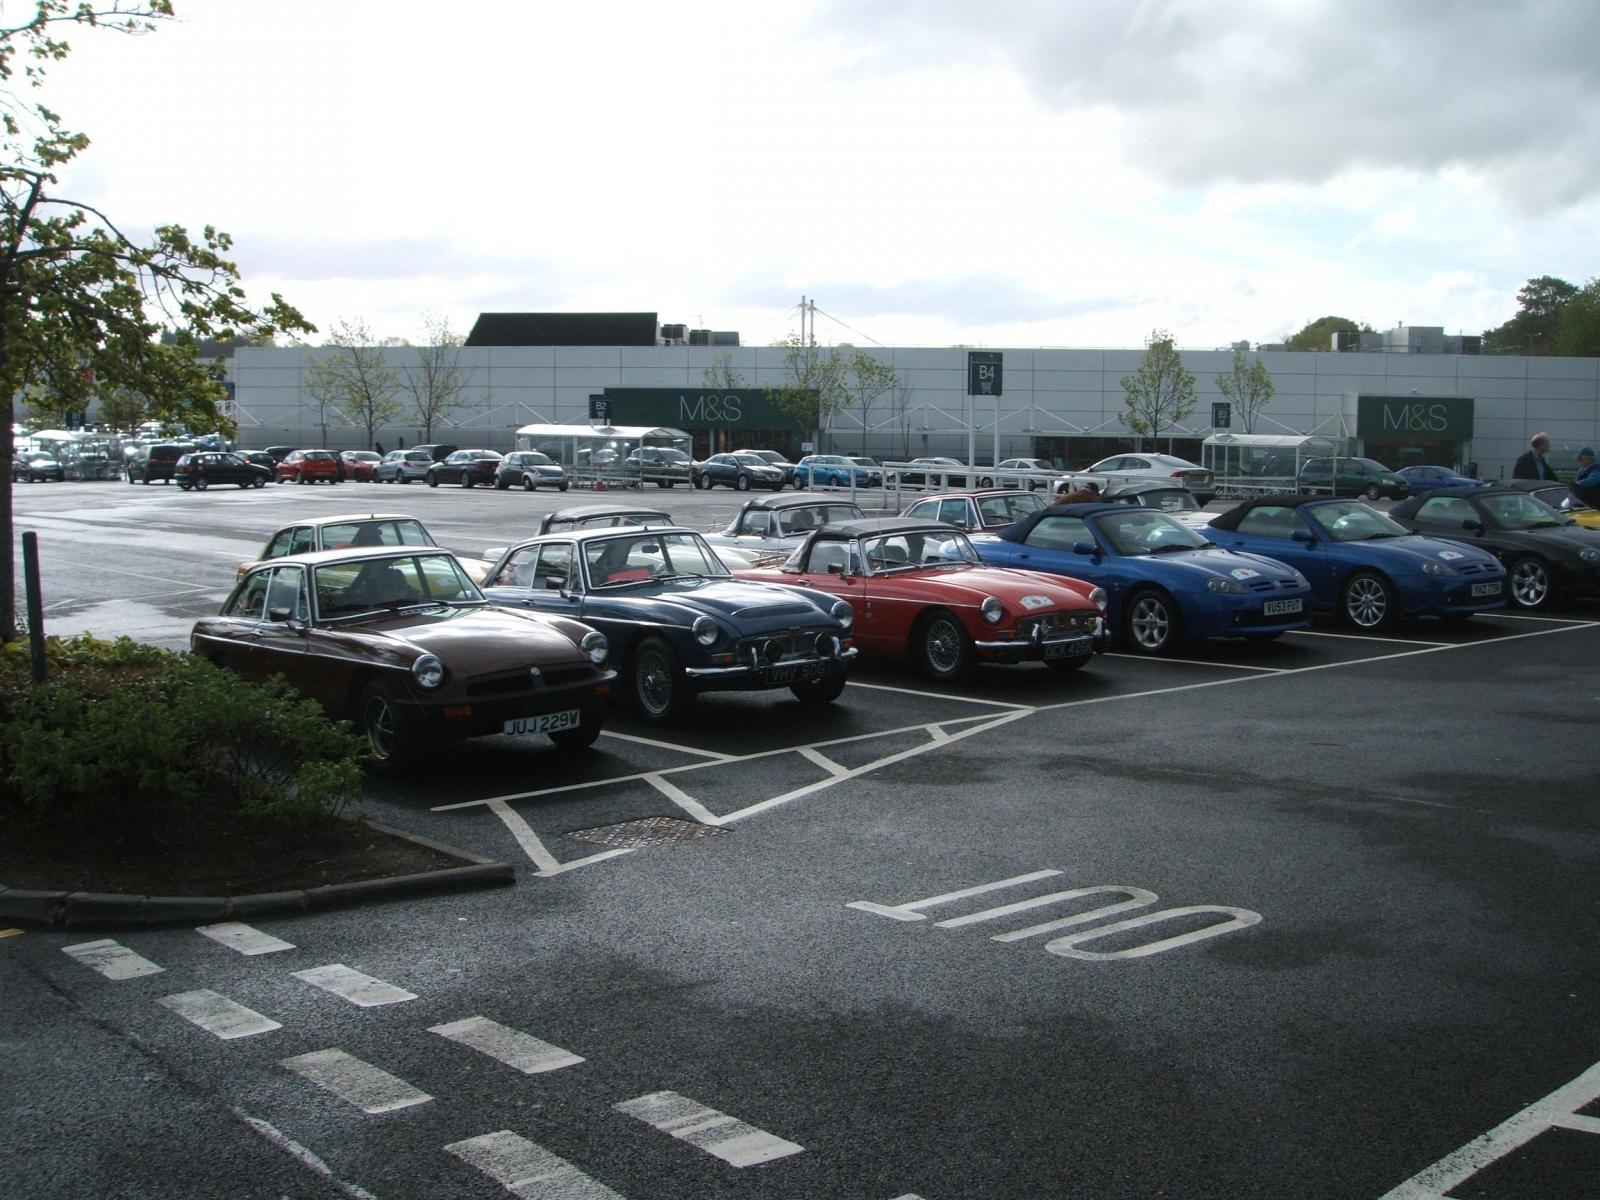 Members-cars-at-Sprucefield-ready-for-the-OFF-to-Wales-ac-1